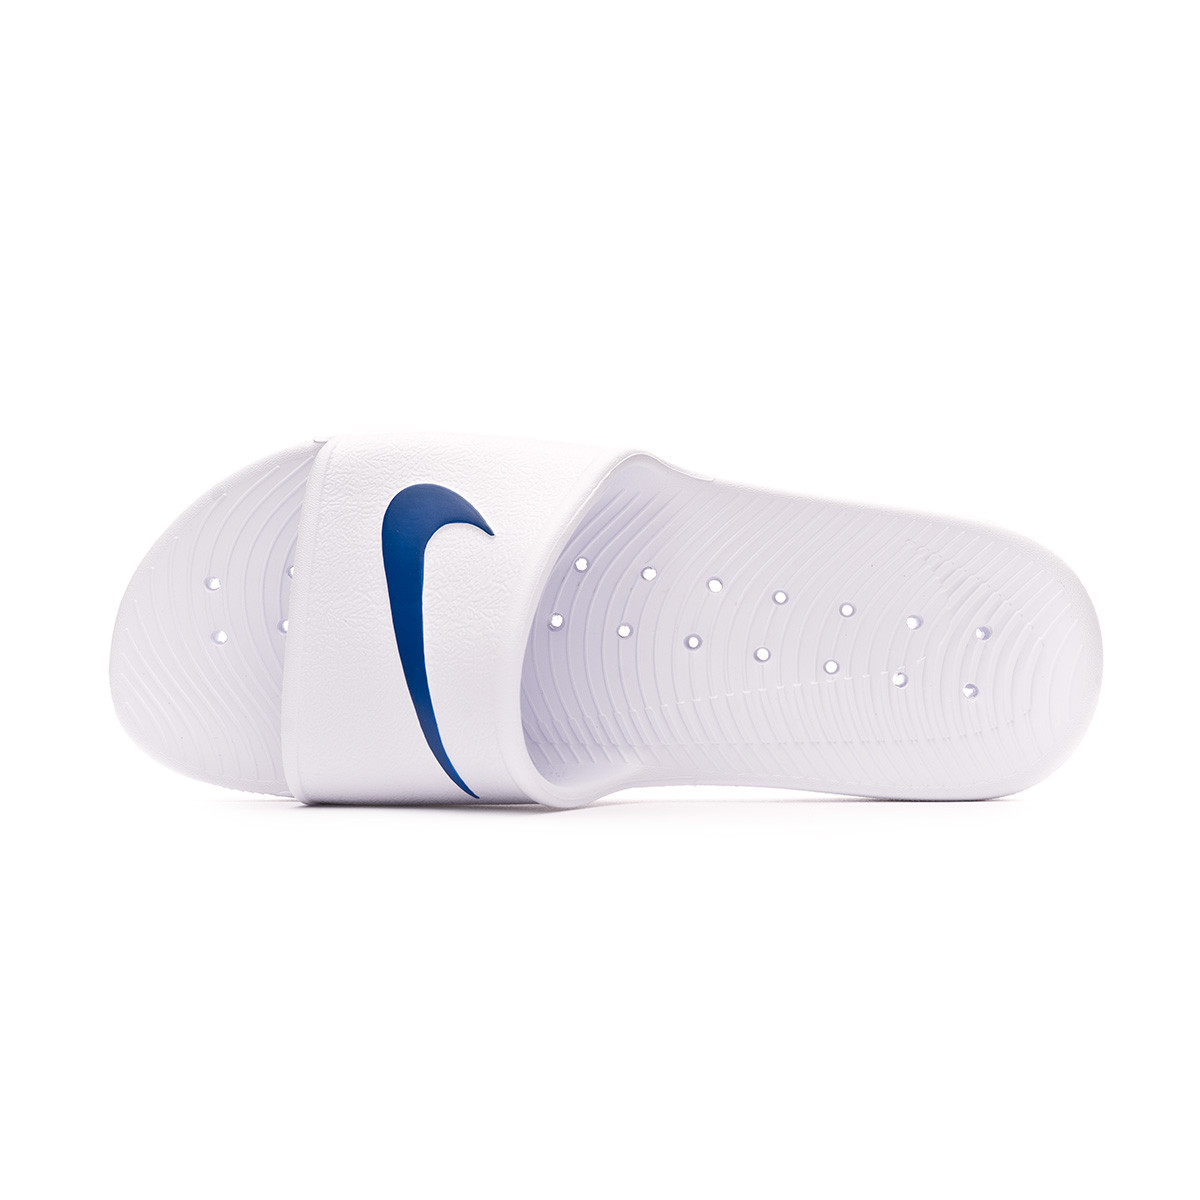 1e7526589 Flip-flops Nike Kawa Shower White-Blue moon - Football store Fútbol Emotion